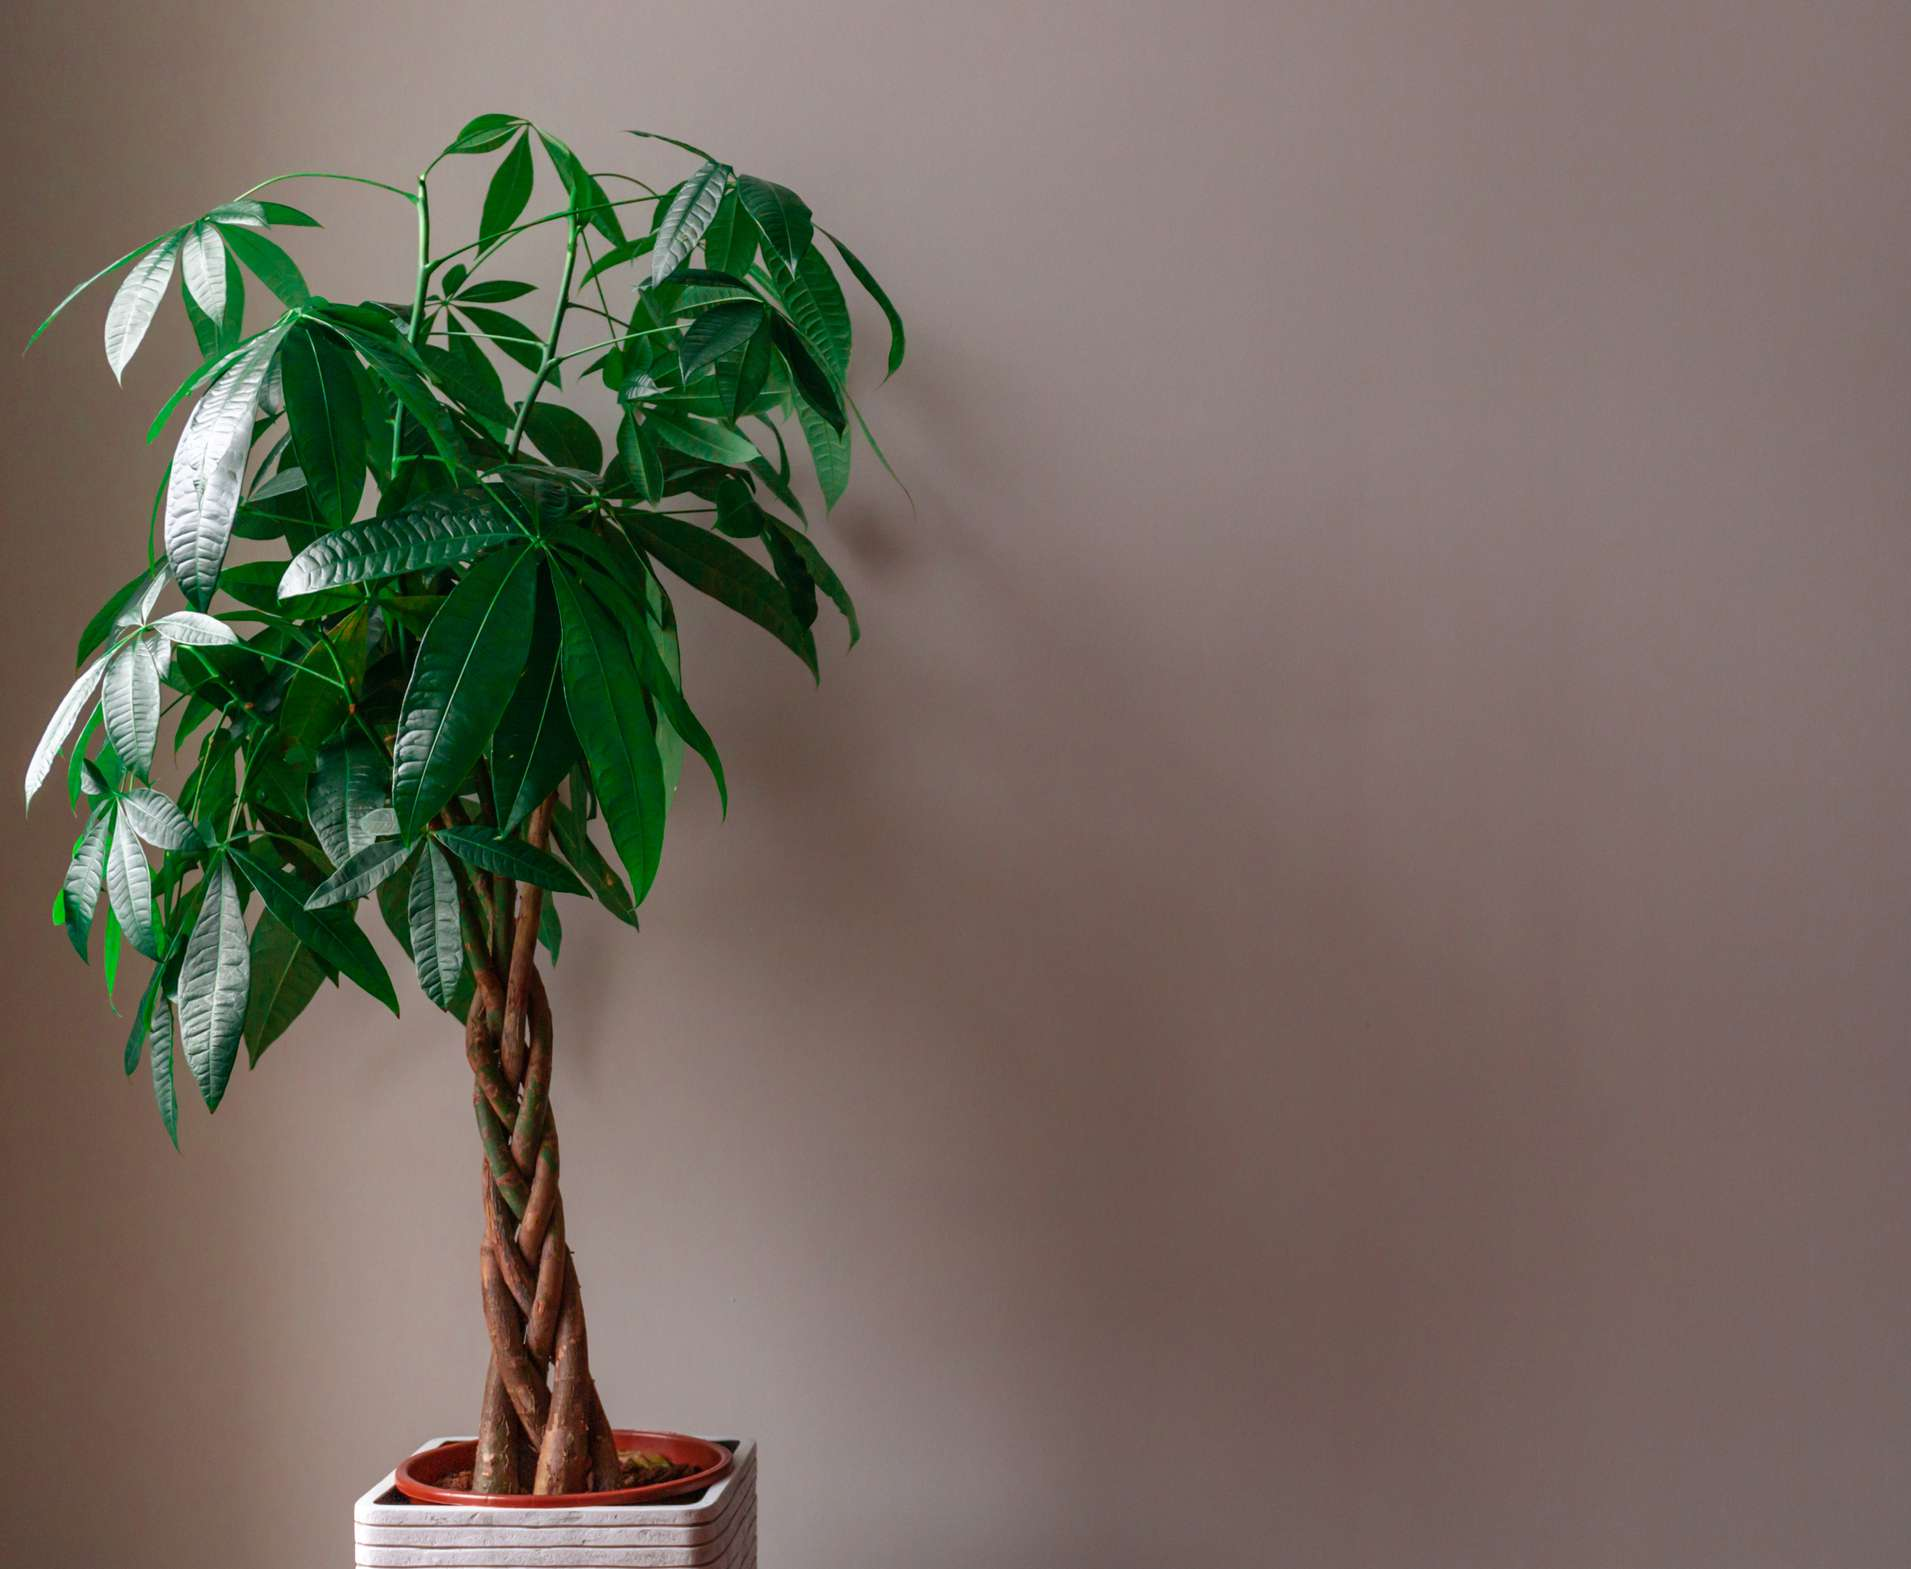 Tall money tree against a pink wall